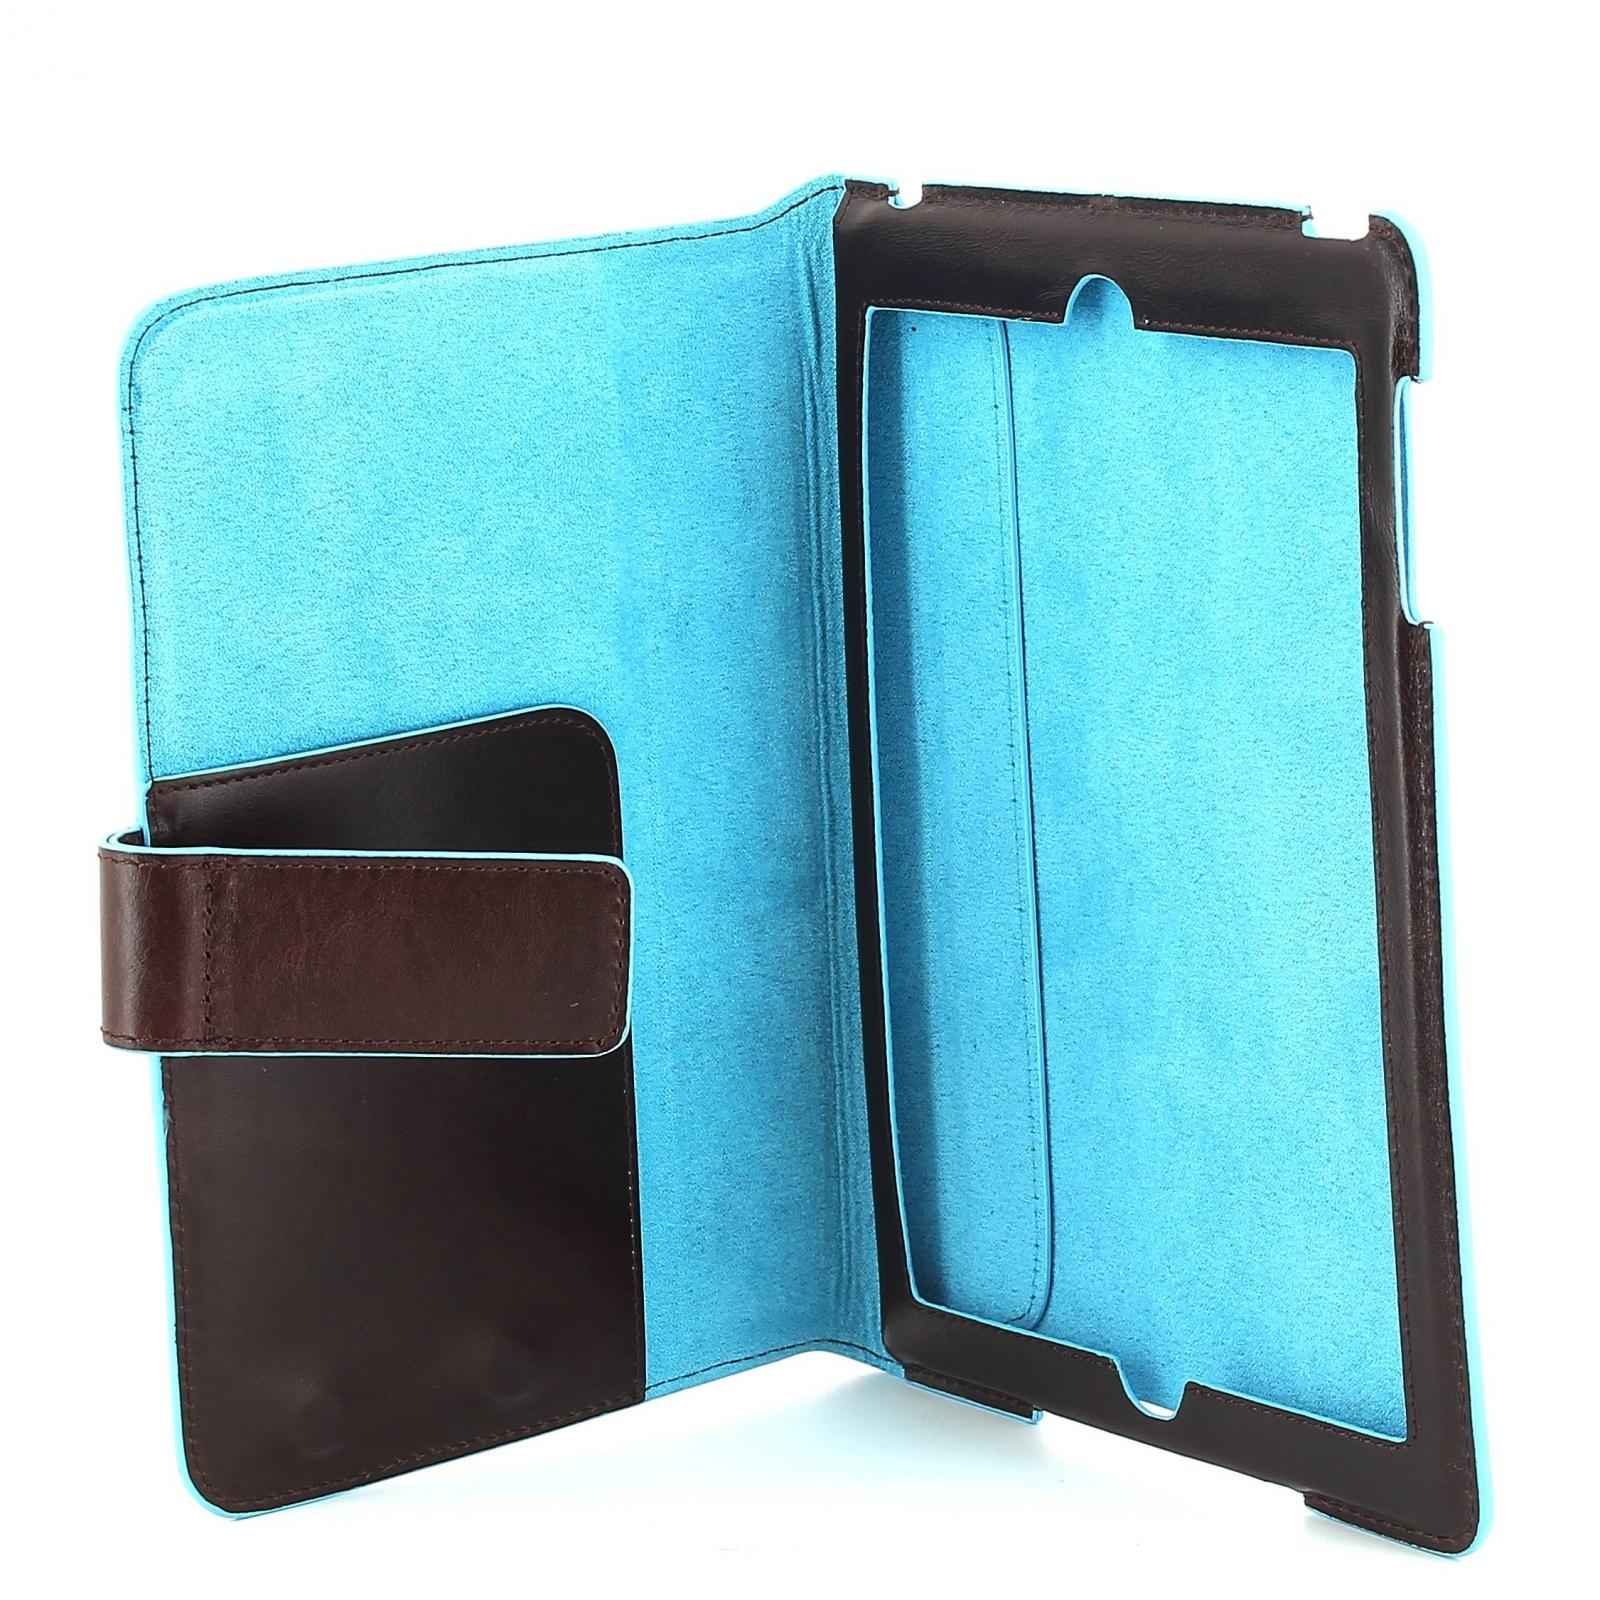 Blue Square iPad Mini Cover